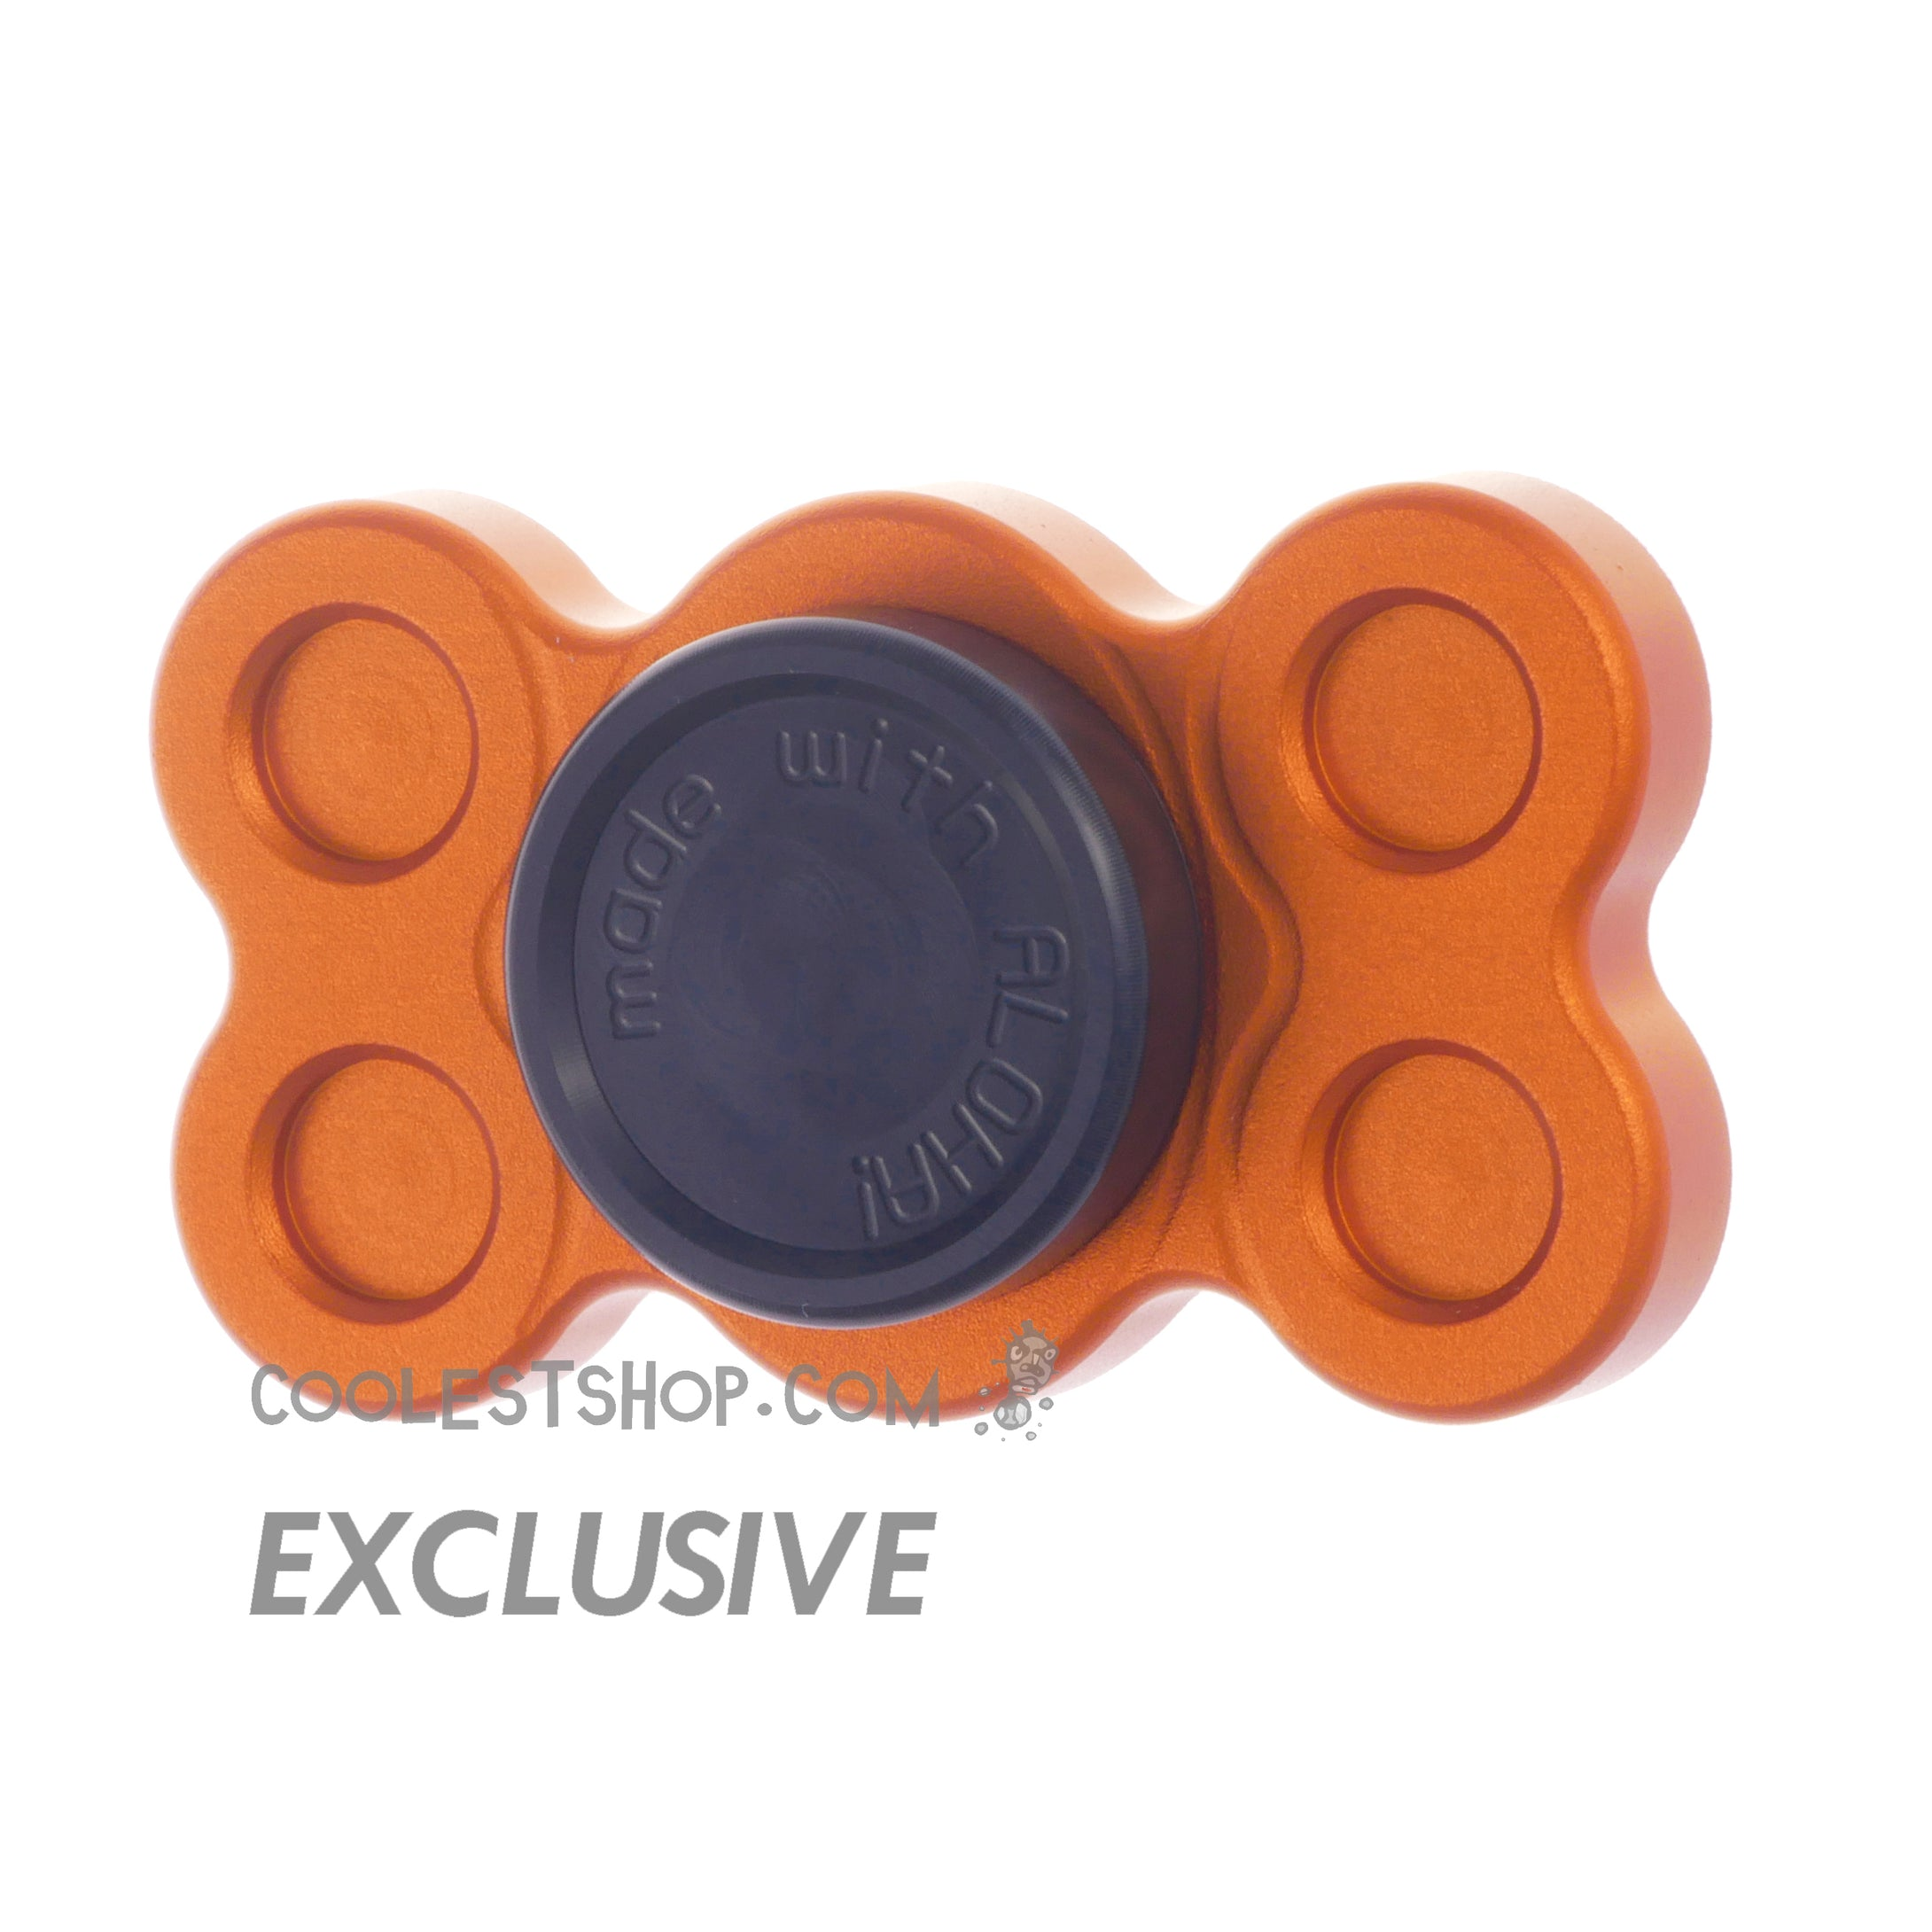 808 Spinner • GEN 1 • made in the USA • Full Aluminum • Anodized ORANGE • 608 bearing version • coolestshop.com exclusive IN STOCK NOW!!!